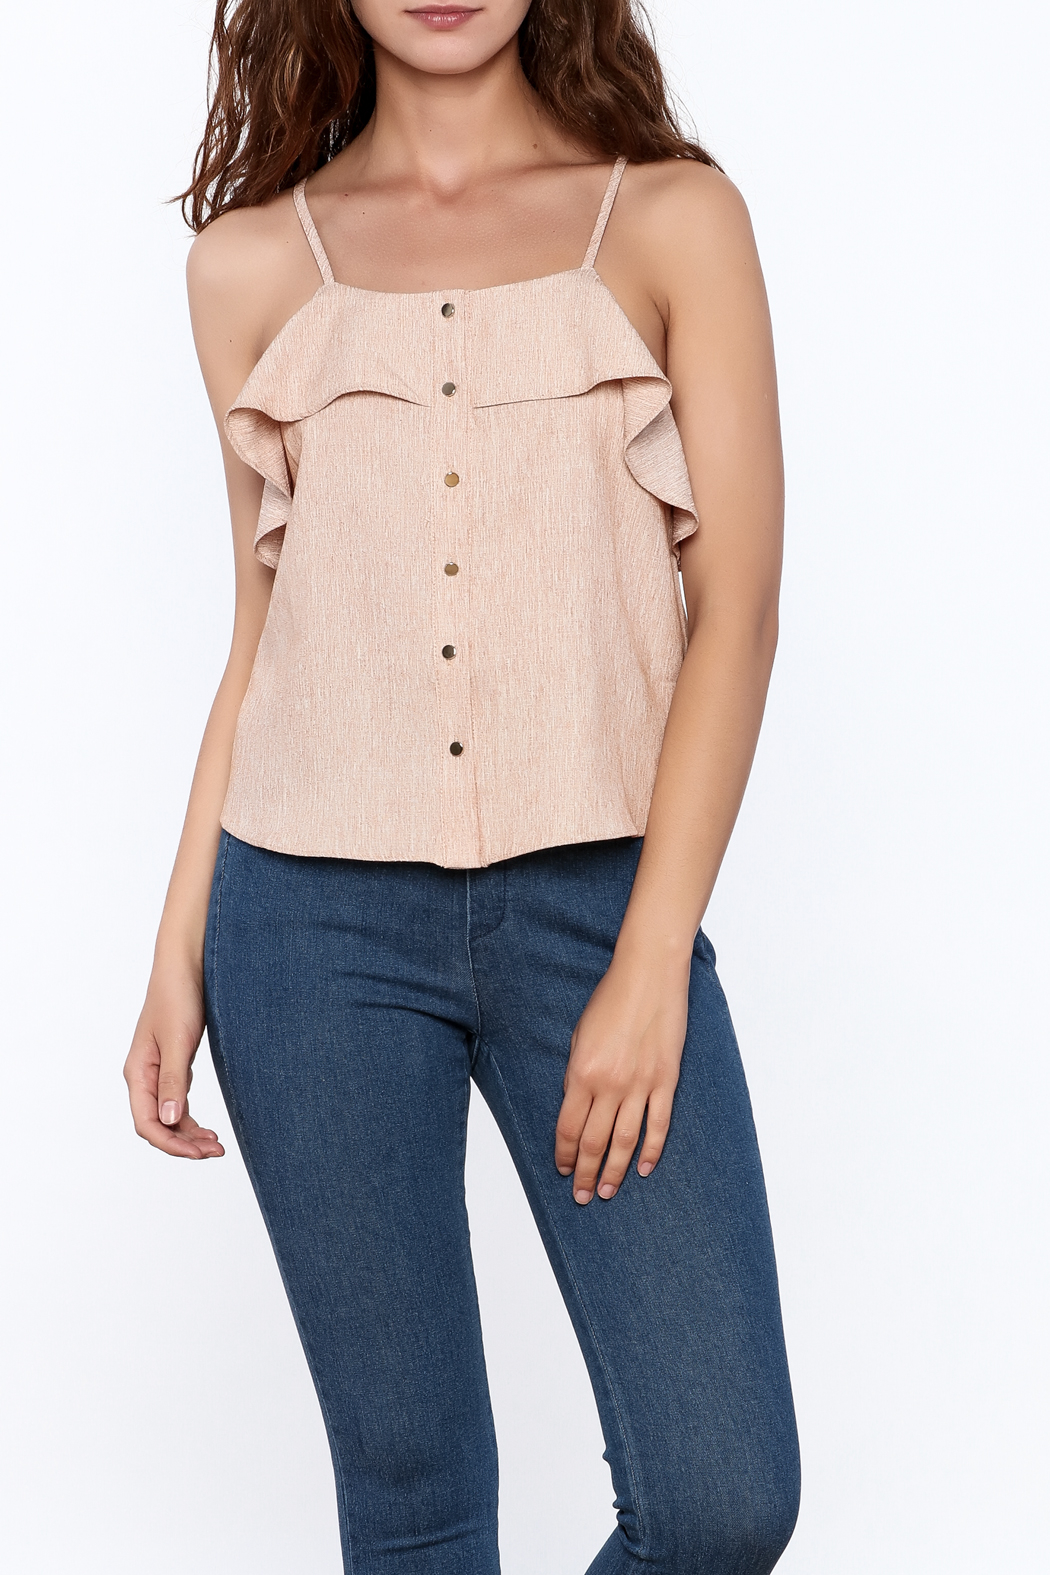 Jealous Tomato Ruffled Top - Front Cropped Image